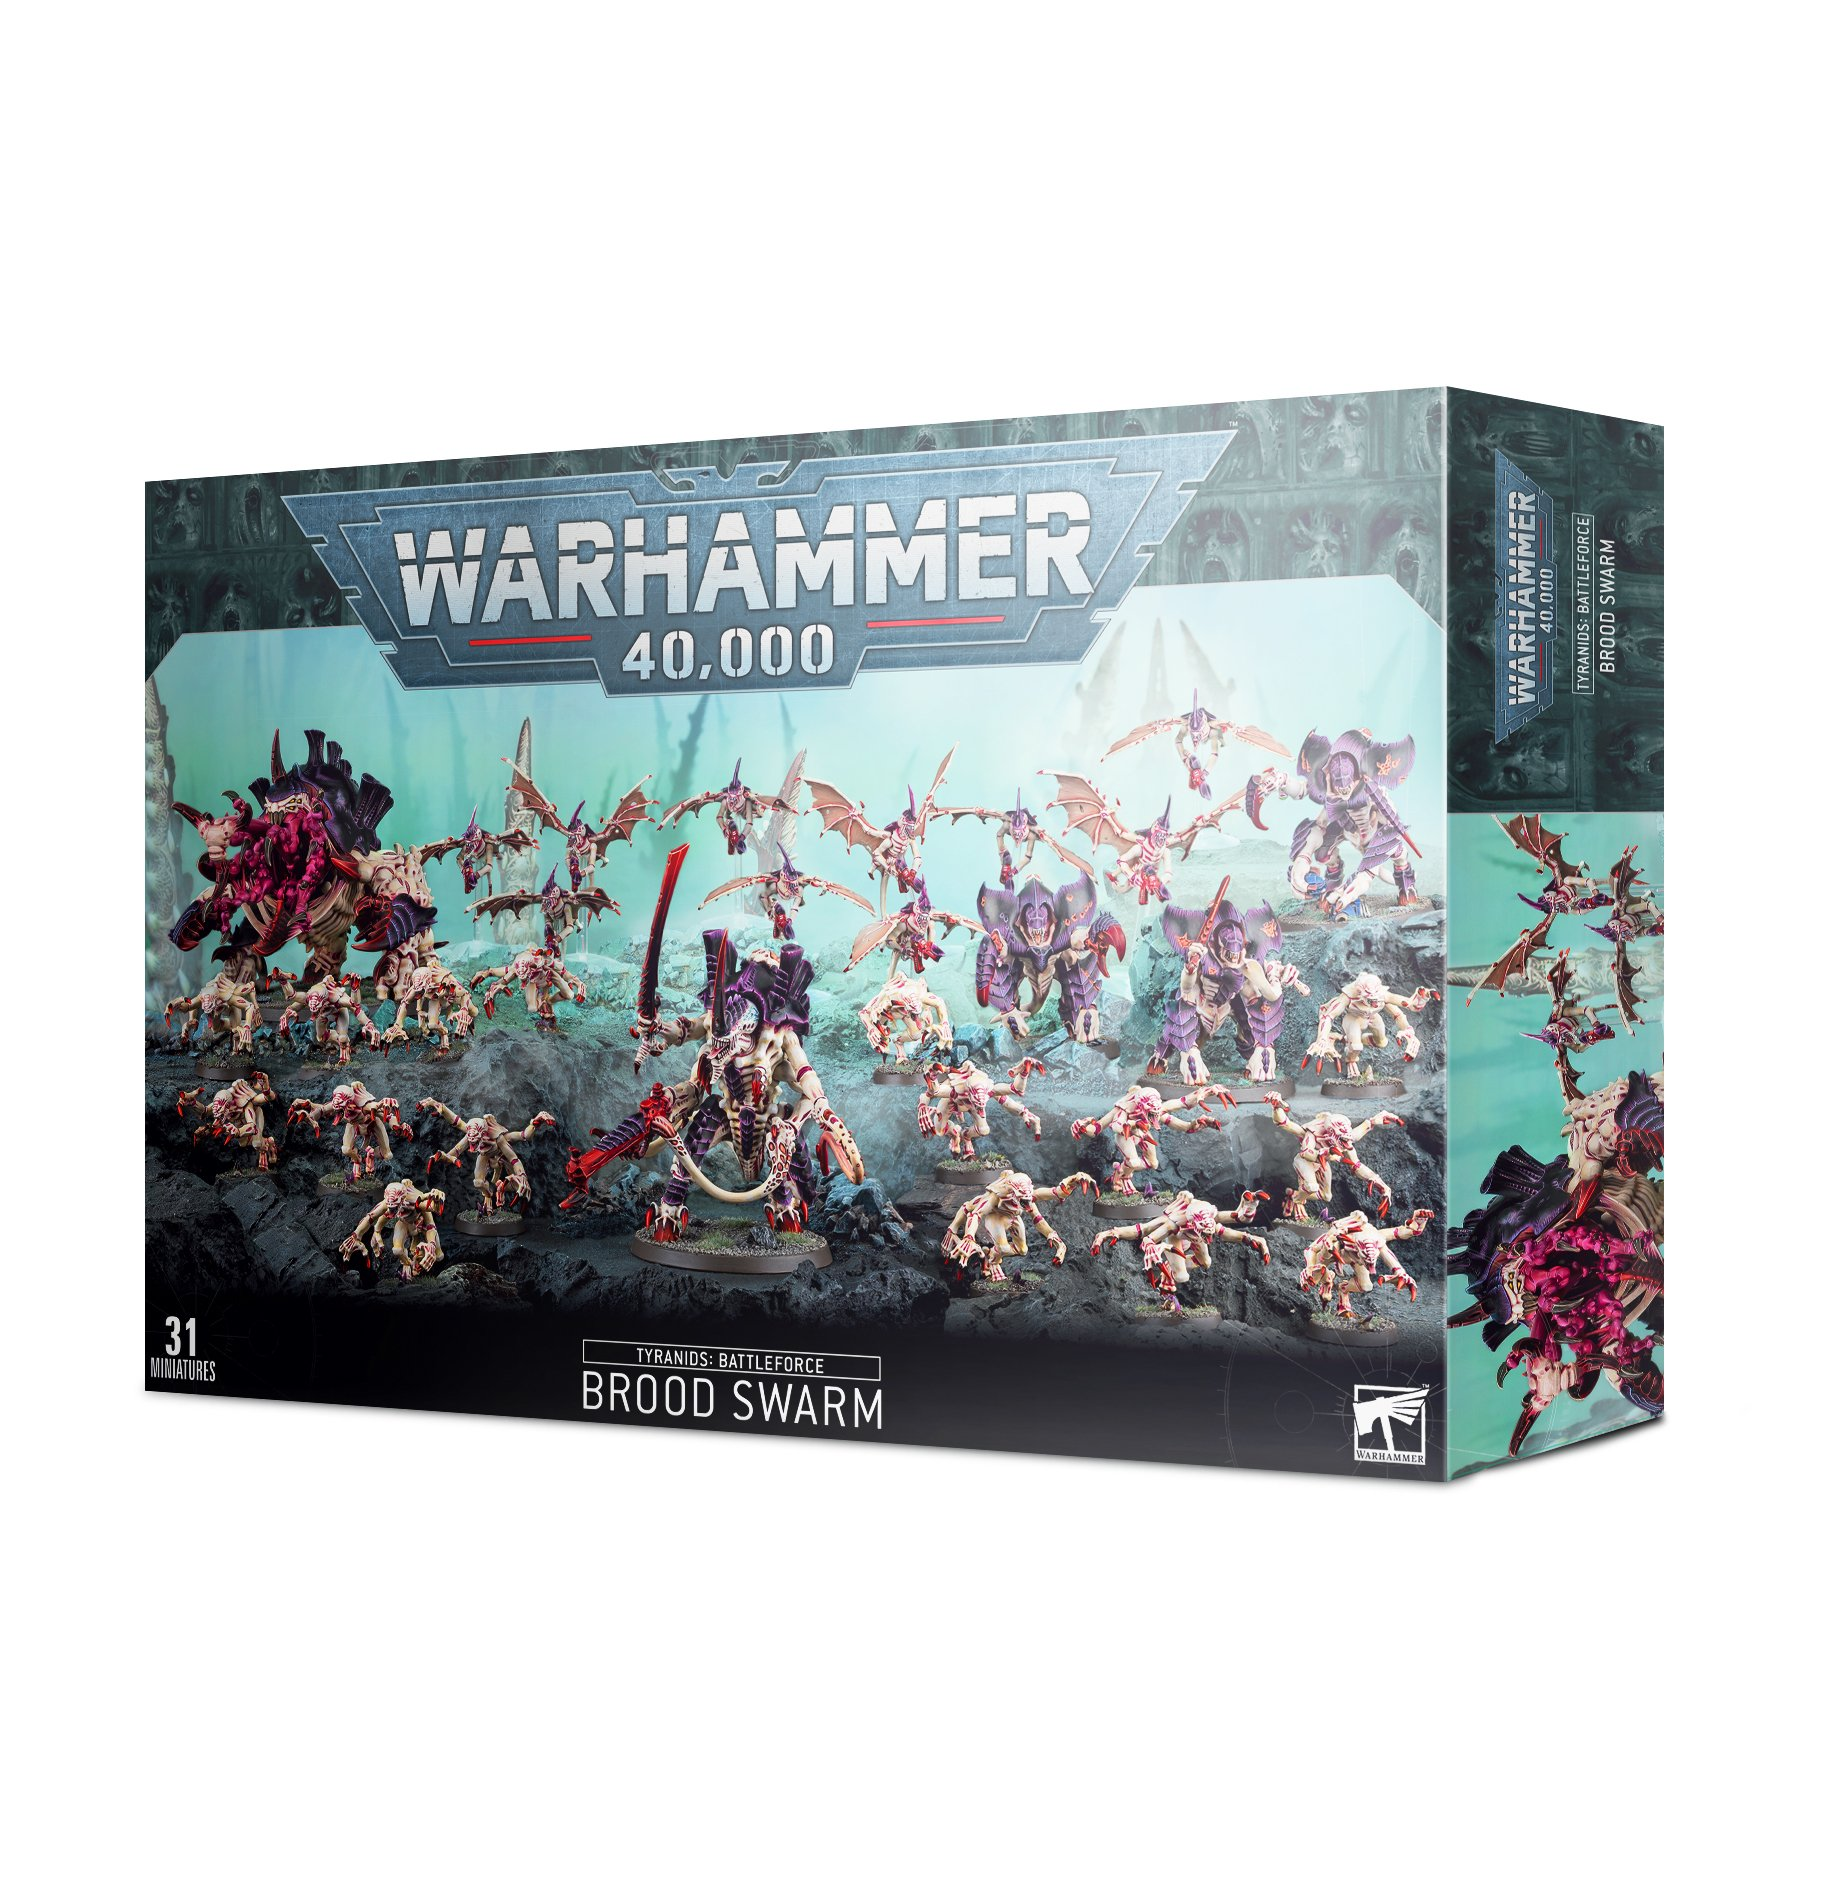 Tyranids Battleforce Brood Swarm Ontabletop Store Custom text is not available on this product. tyranids battleforce brood swarm